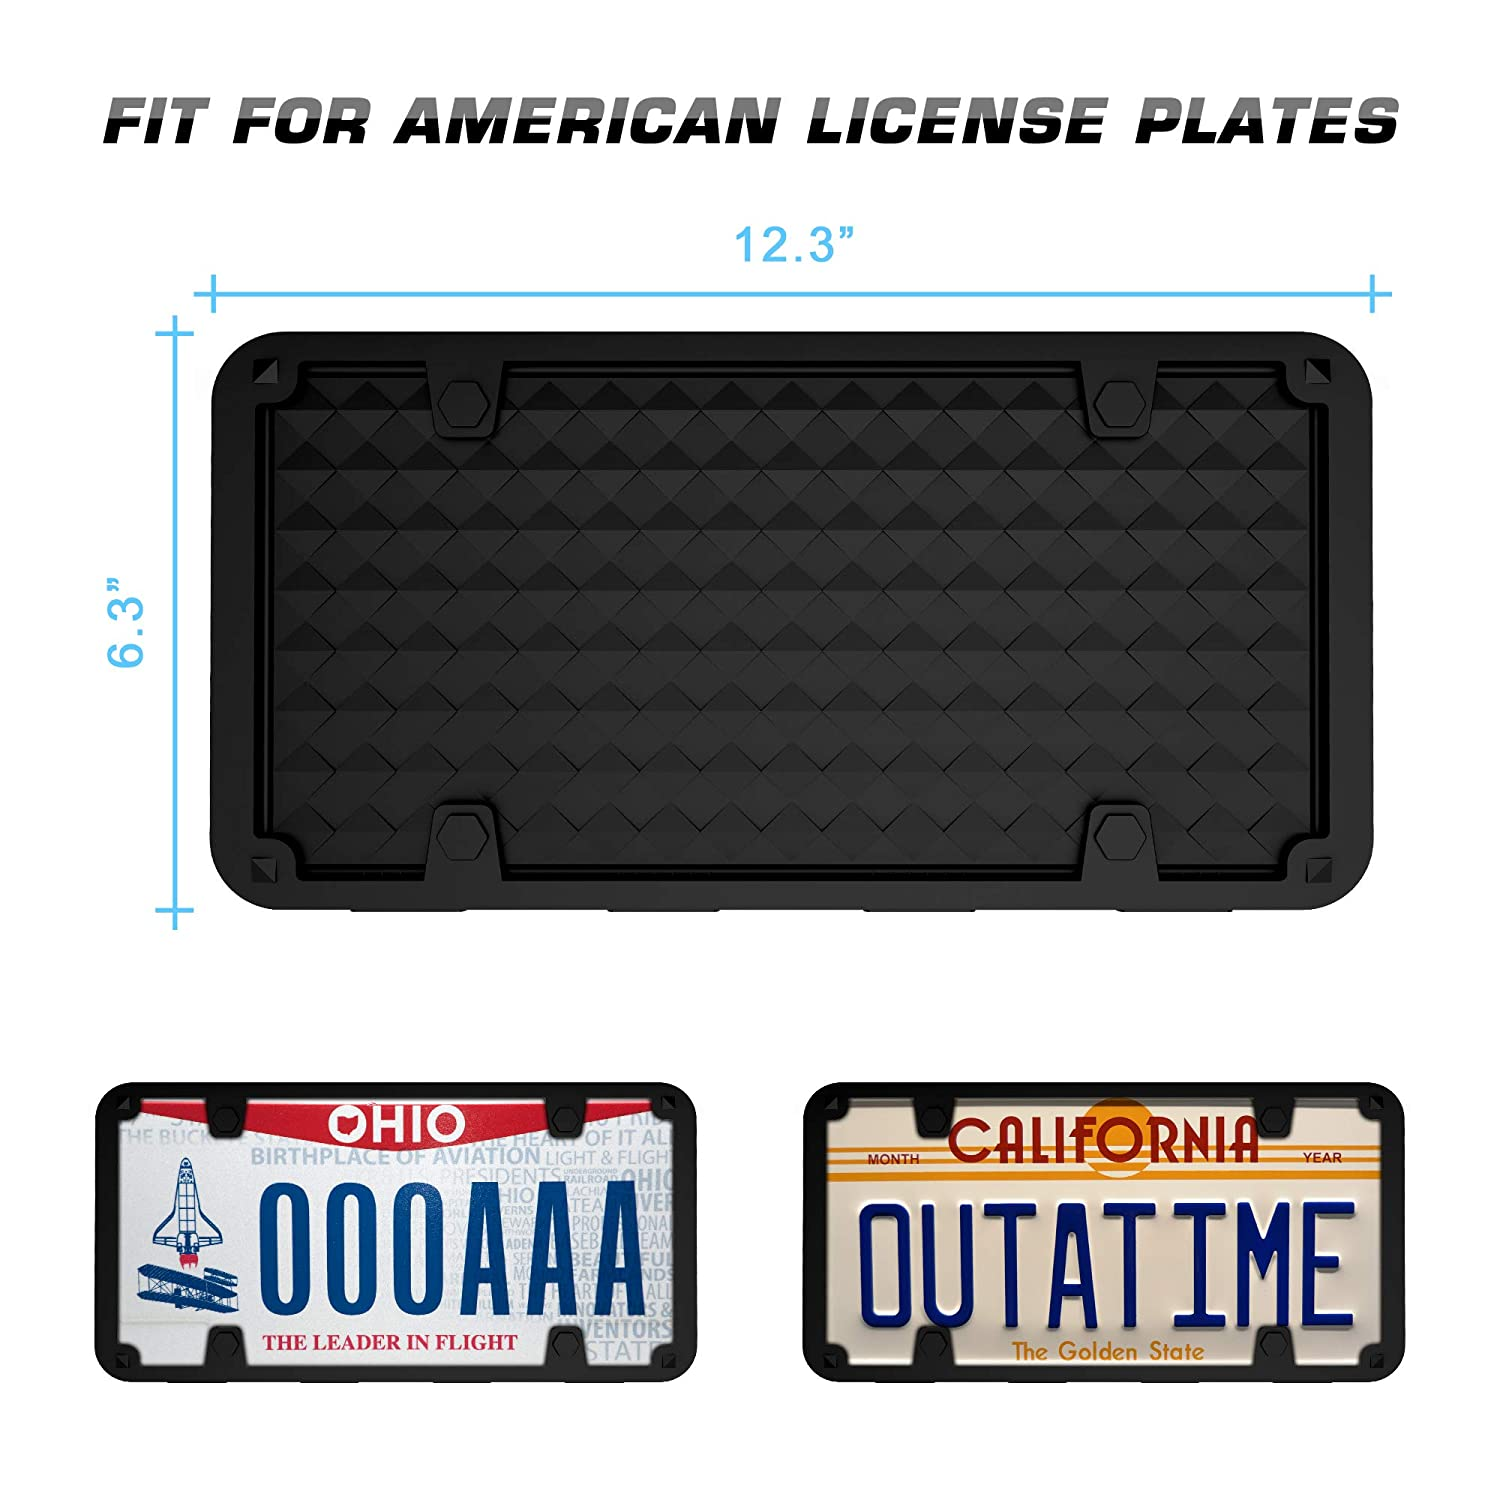 One Pack IPOW License Plate Frame Universal License Plate Holder Cover with Drainage Holes Silicone Material Scratch Proof Rust-Proof with Screws Fasteners for Securing Car License Plates